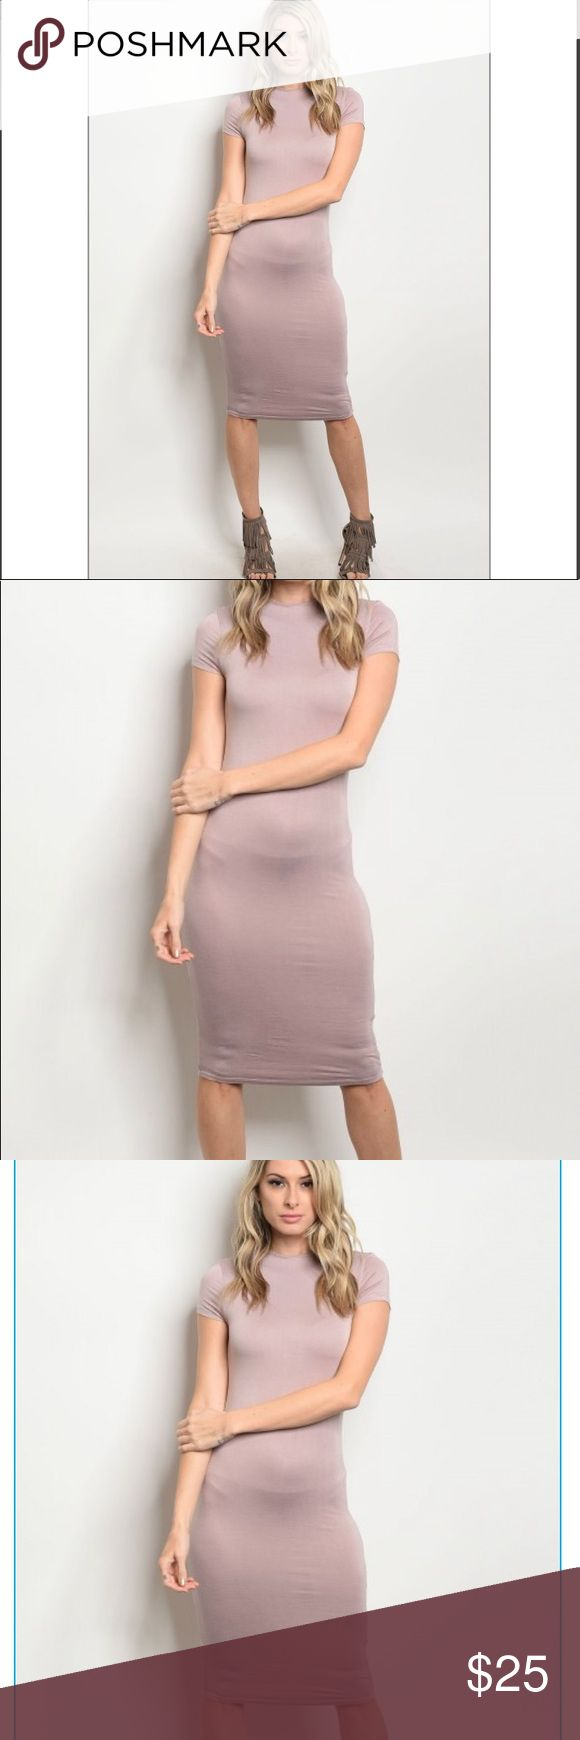 Mochca bodycon dress **Boutique item  Very sexy beautiful dress for an everyday look or for Valentine's Day!  Short sleeve fitted double lined bodycon dress that features a mock neckline Dresses Midi